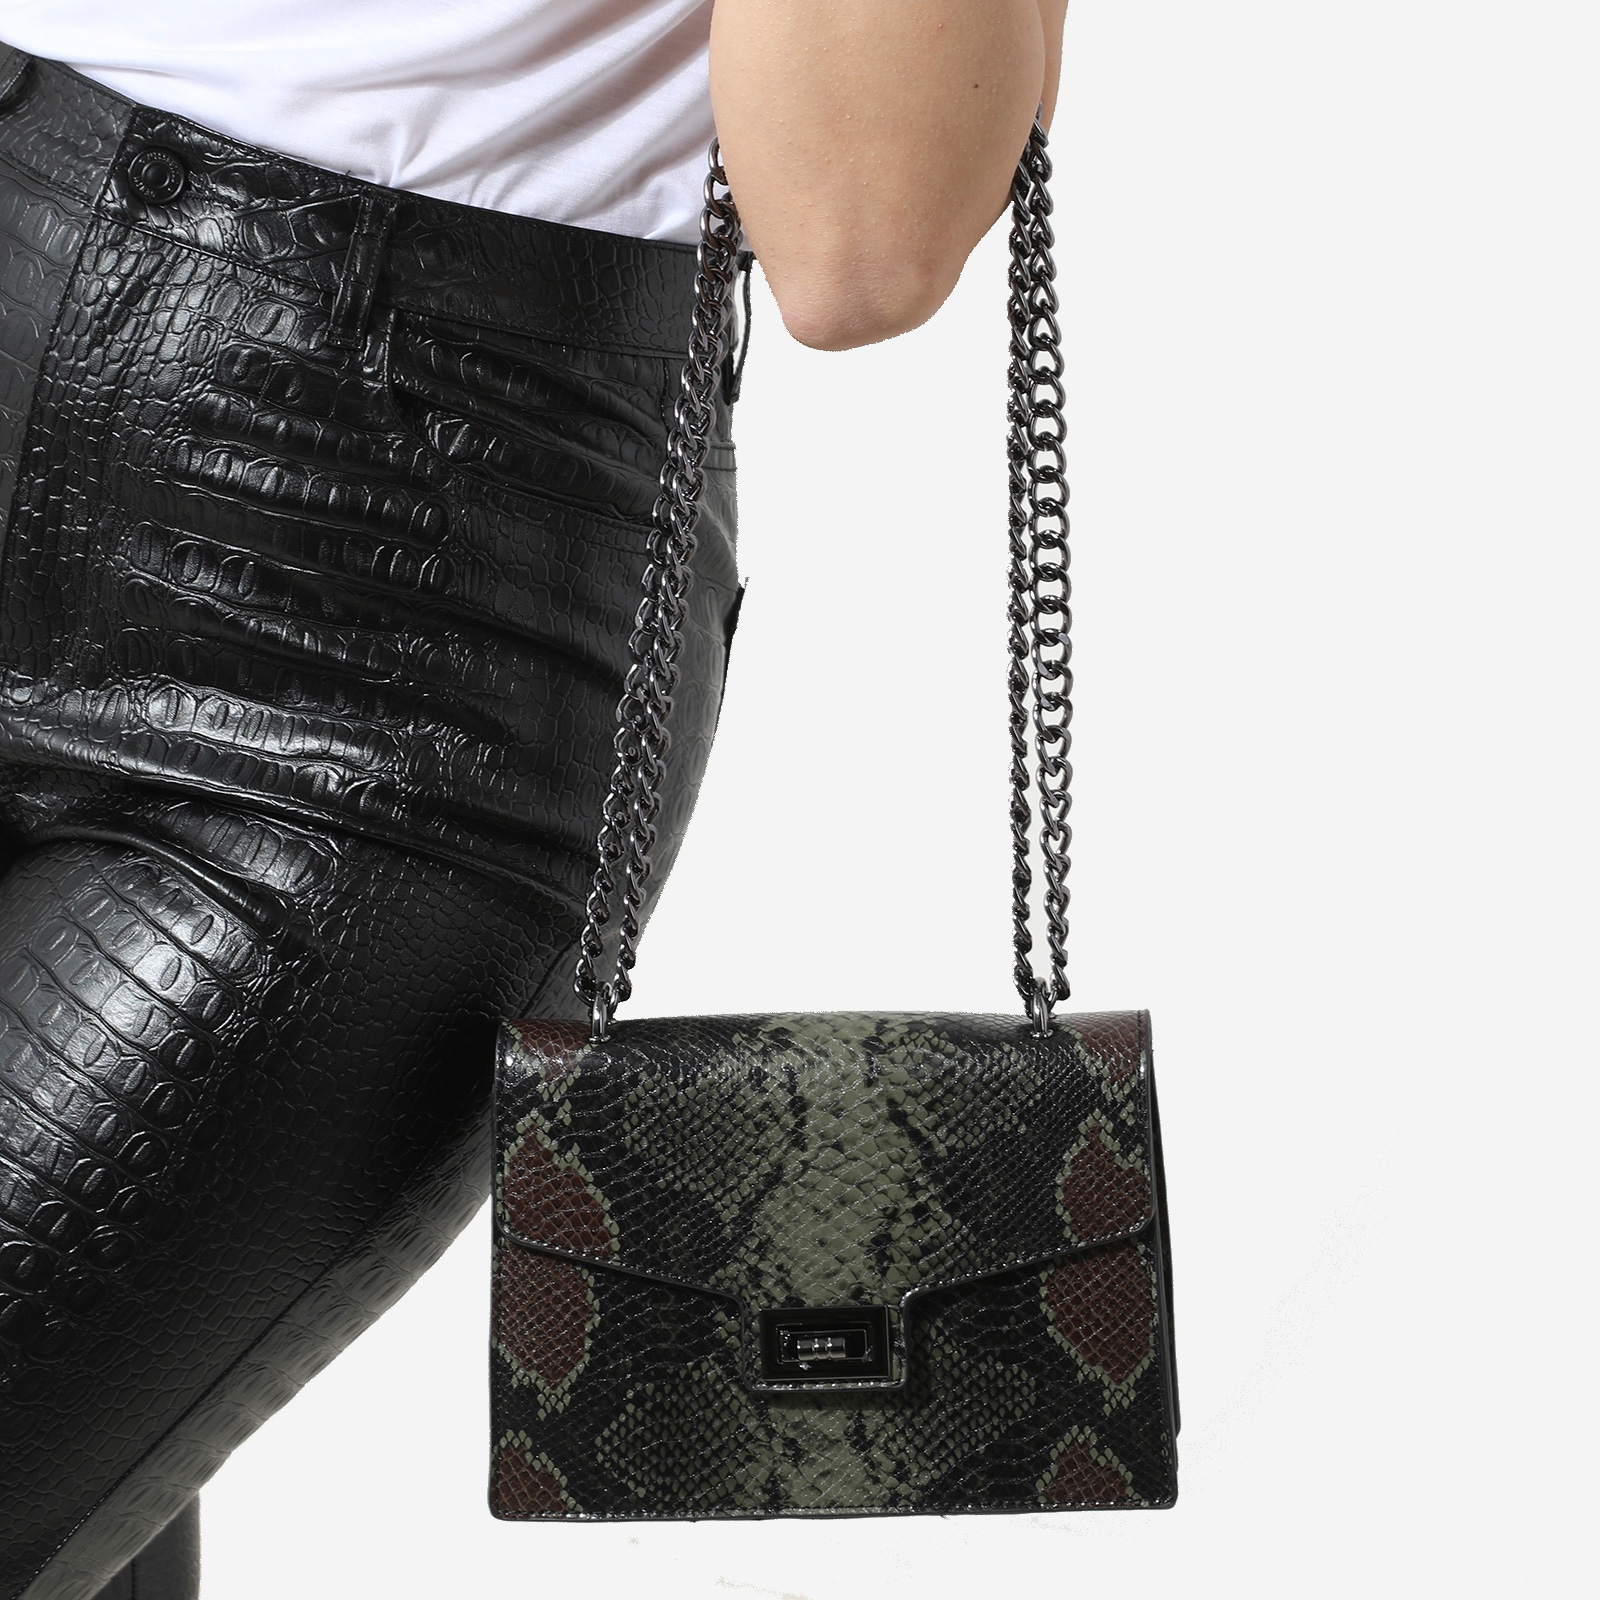 Chain Detail Cross Body Bag In Green Snake Print Faux Leather